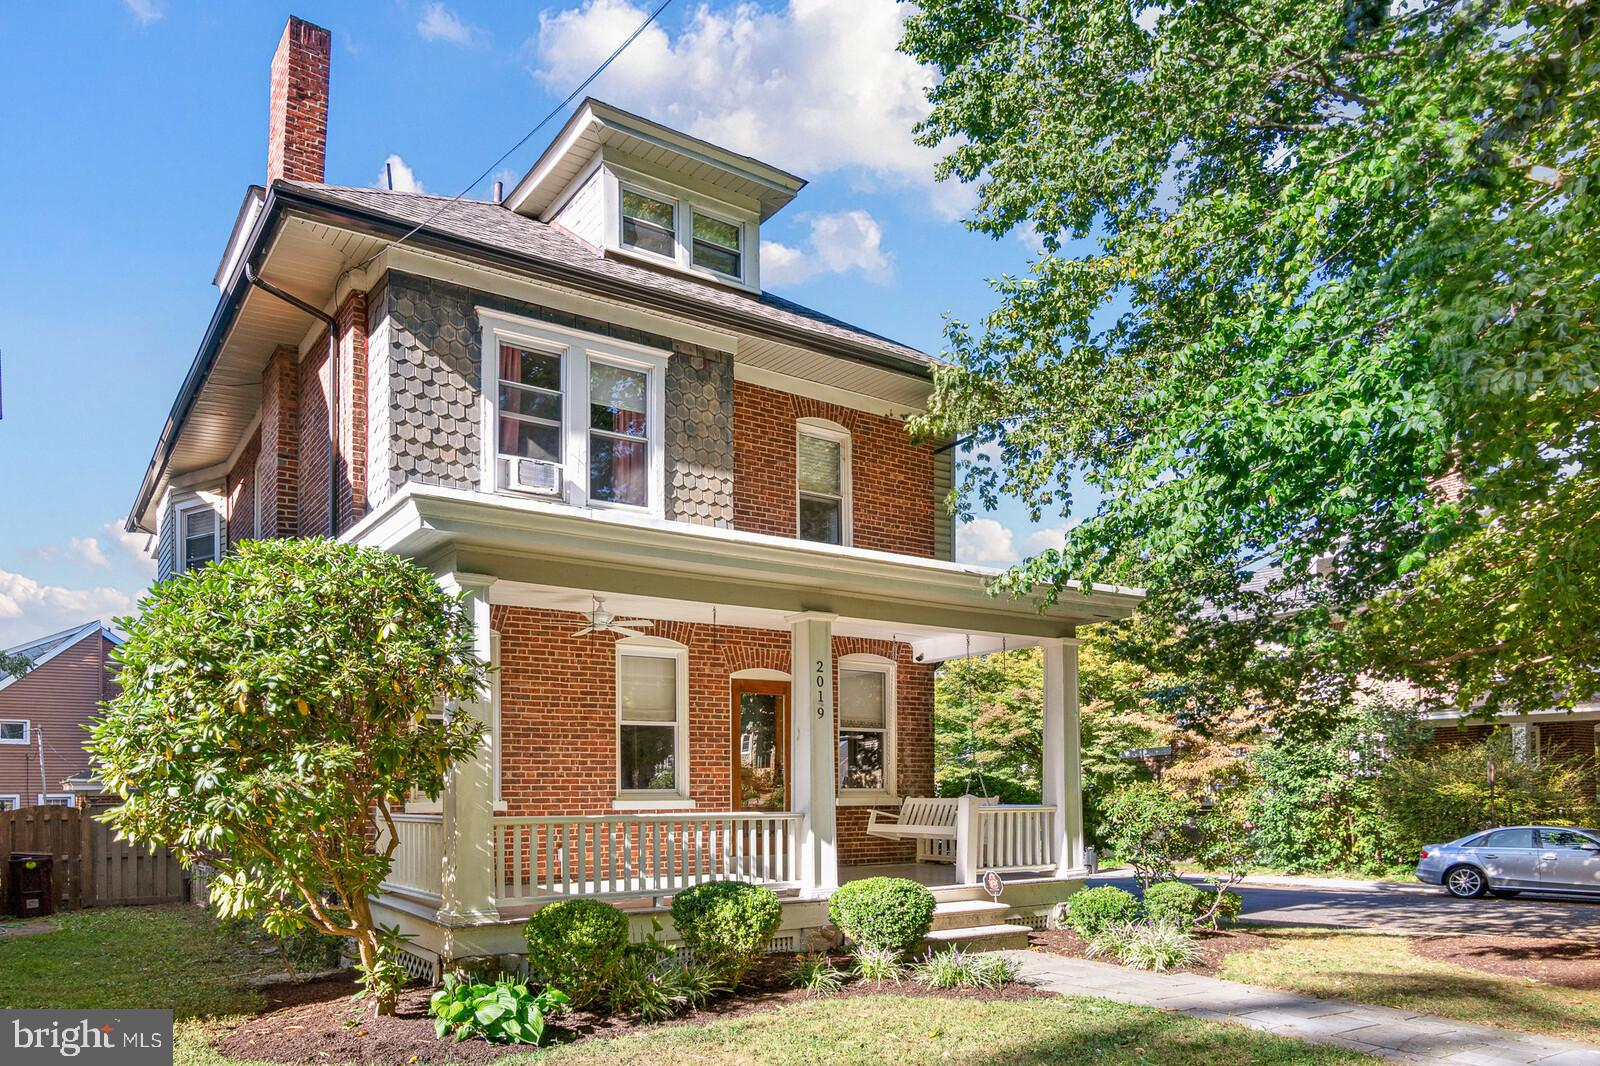 This rare opportunity to purchase a single family detached home in this location won't last long.  3 story brick classic has been professionally designed and decorated.  Every detail has been carefully considered to reflect today's modern flare while maintaining the original character of this wonderful home. In the past several years there have been over $75k spent in upgrades.  Hardwood floors throughout, custom inset cabinetry with stainless appliances, quartz countertops, original clawfoot tub on the main level and much more. The 2nd floor has 3/4 spacious bedrooms and 1 full bath. There is even a 3rd floor with a large bedroom and walk in attic for additional storage as well as an ac/heat mini split system. The outside is complete with beautiful landscaping and stone patio with a privacy fence. Unbeatable location close to all major roads, restaurants, and shopping. A great place to call home.